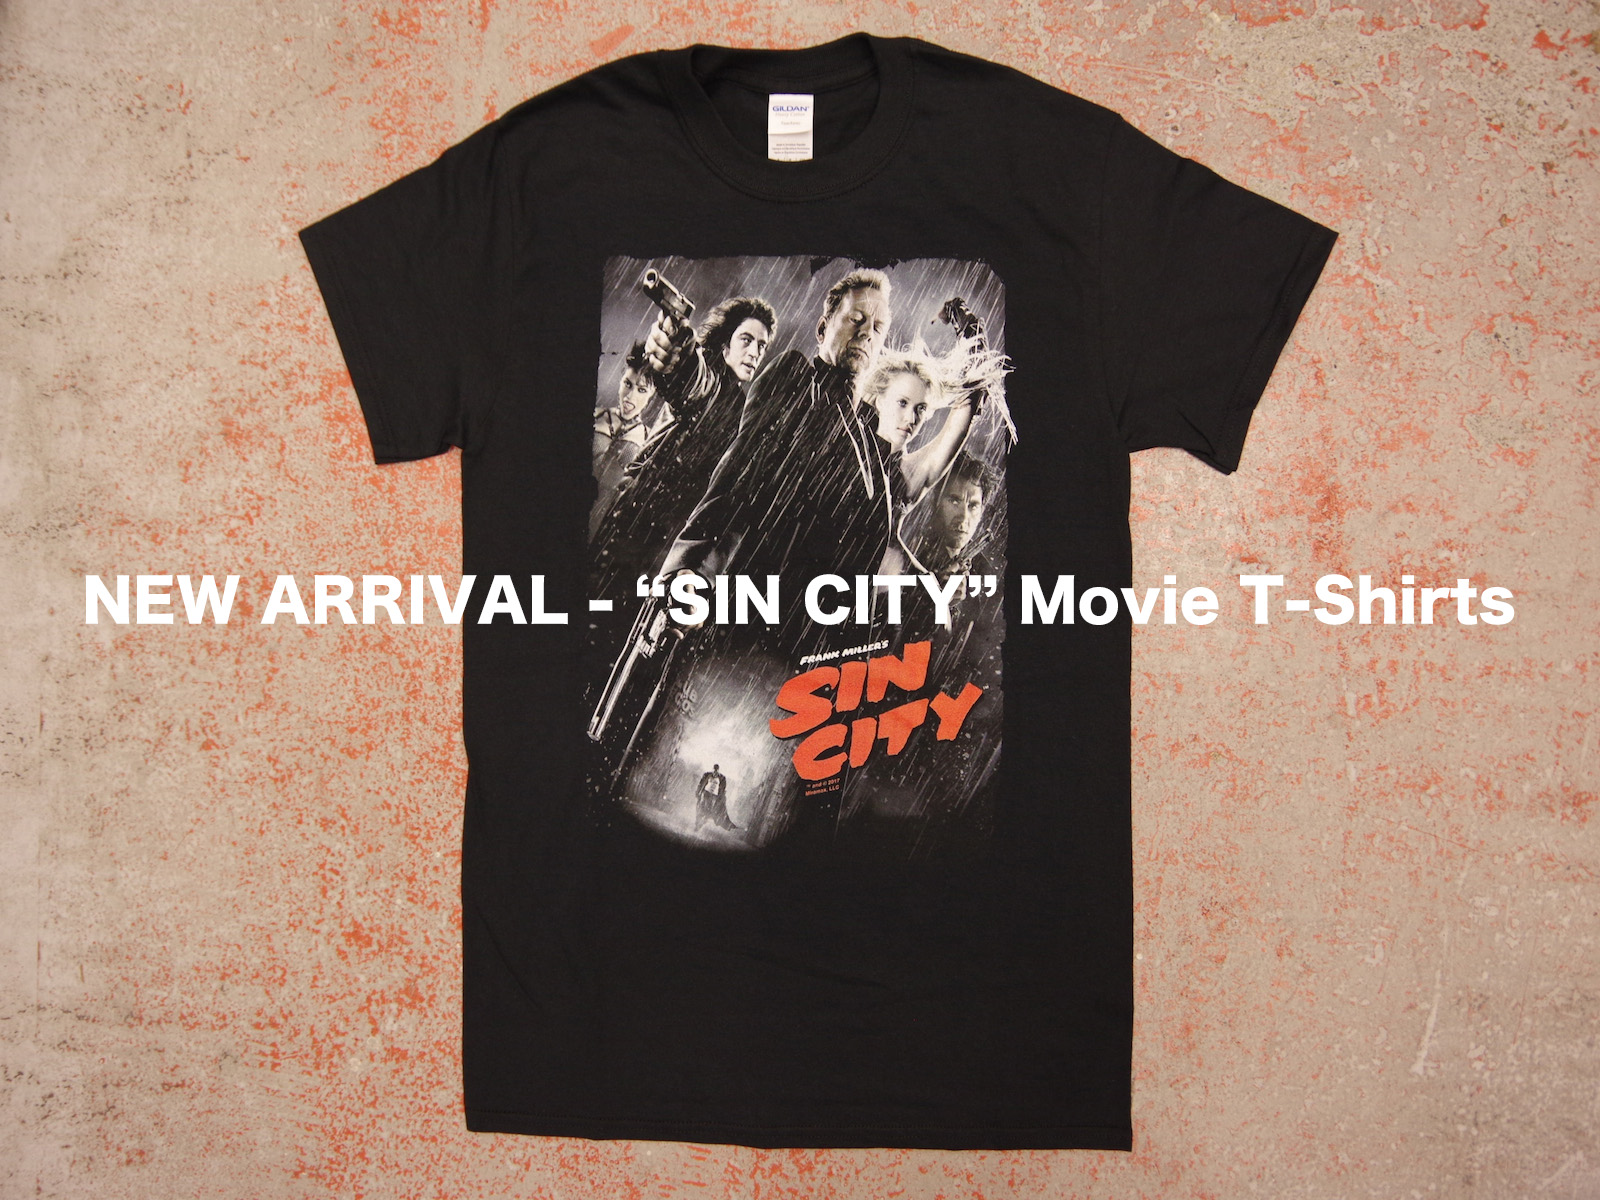 NEW ARRIVAL – SIN CITY Movie T-Shirts